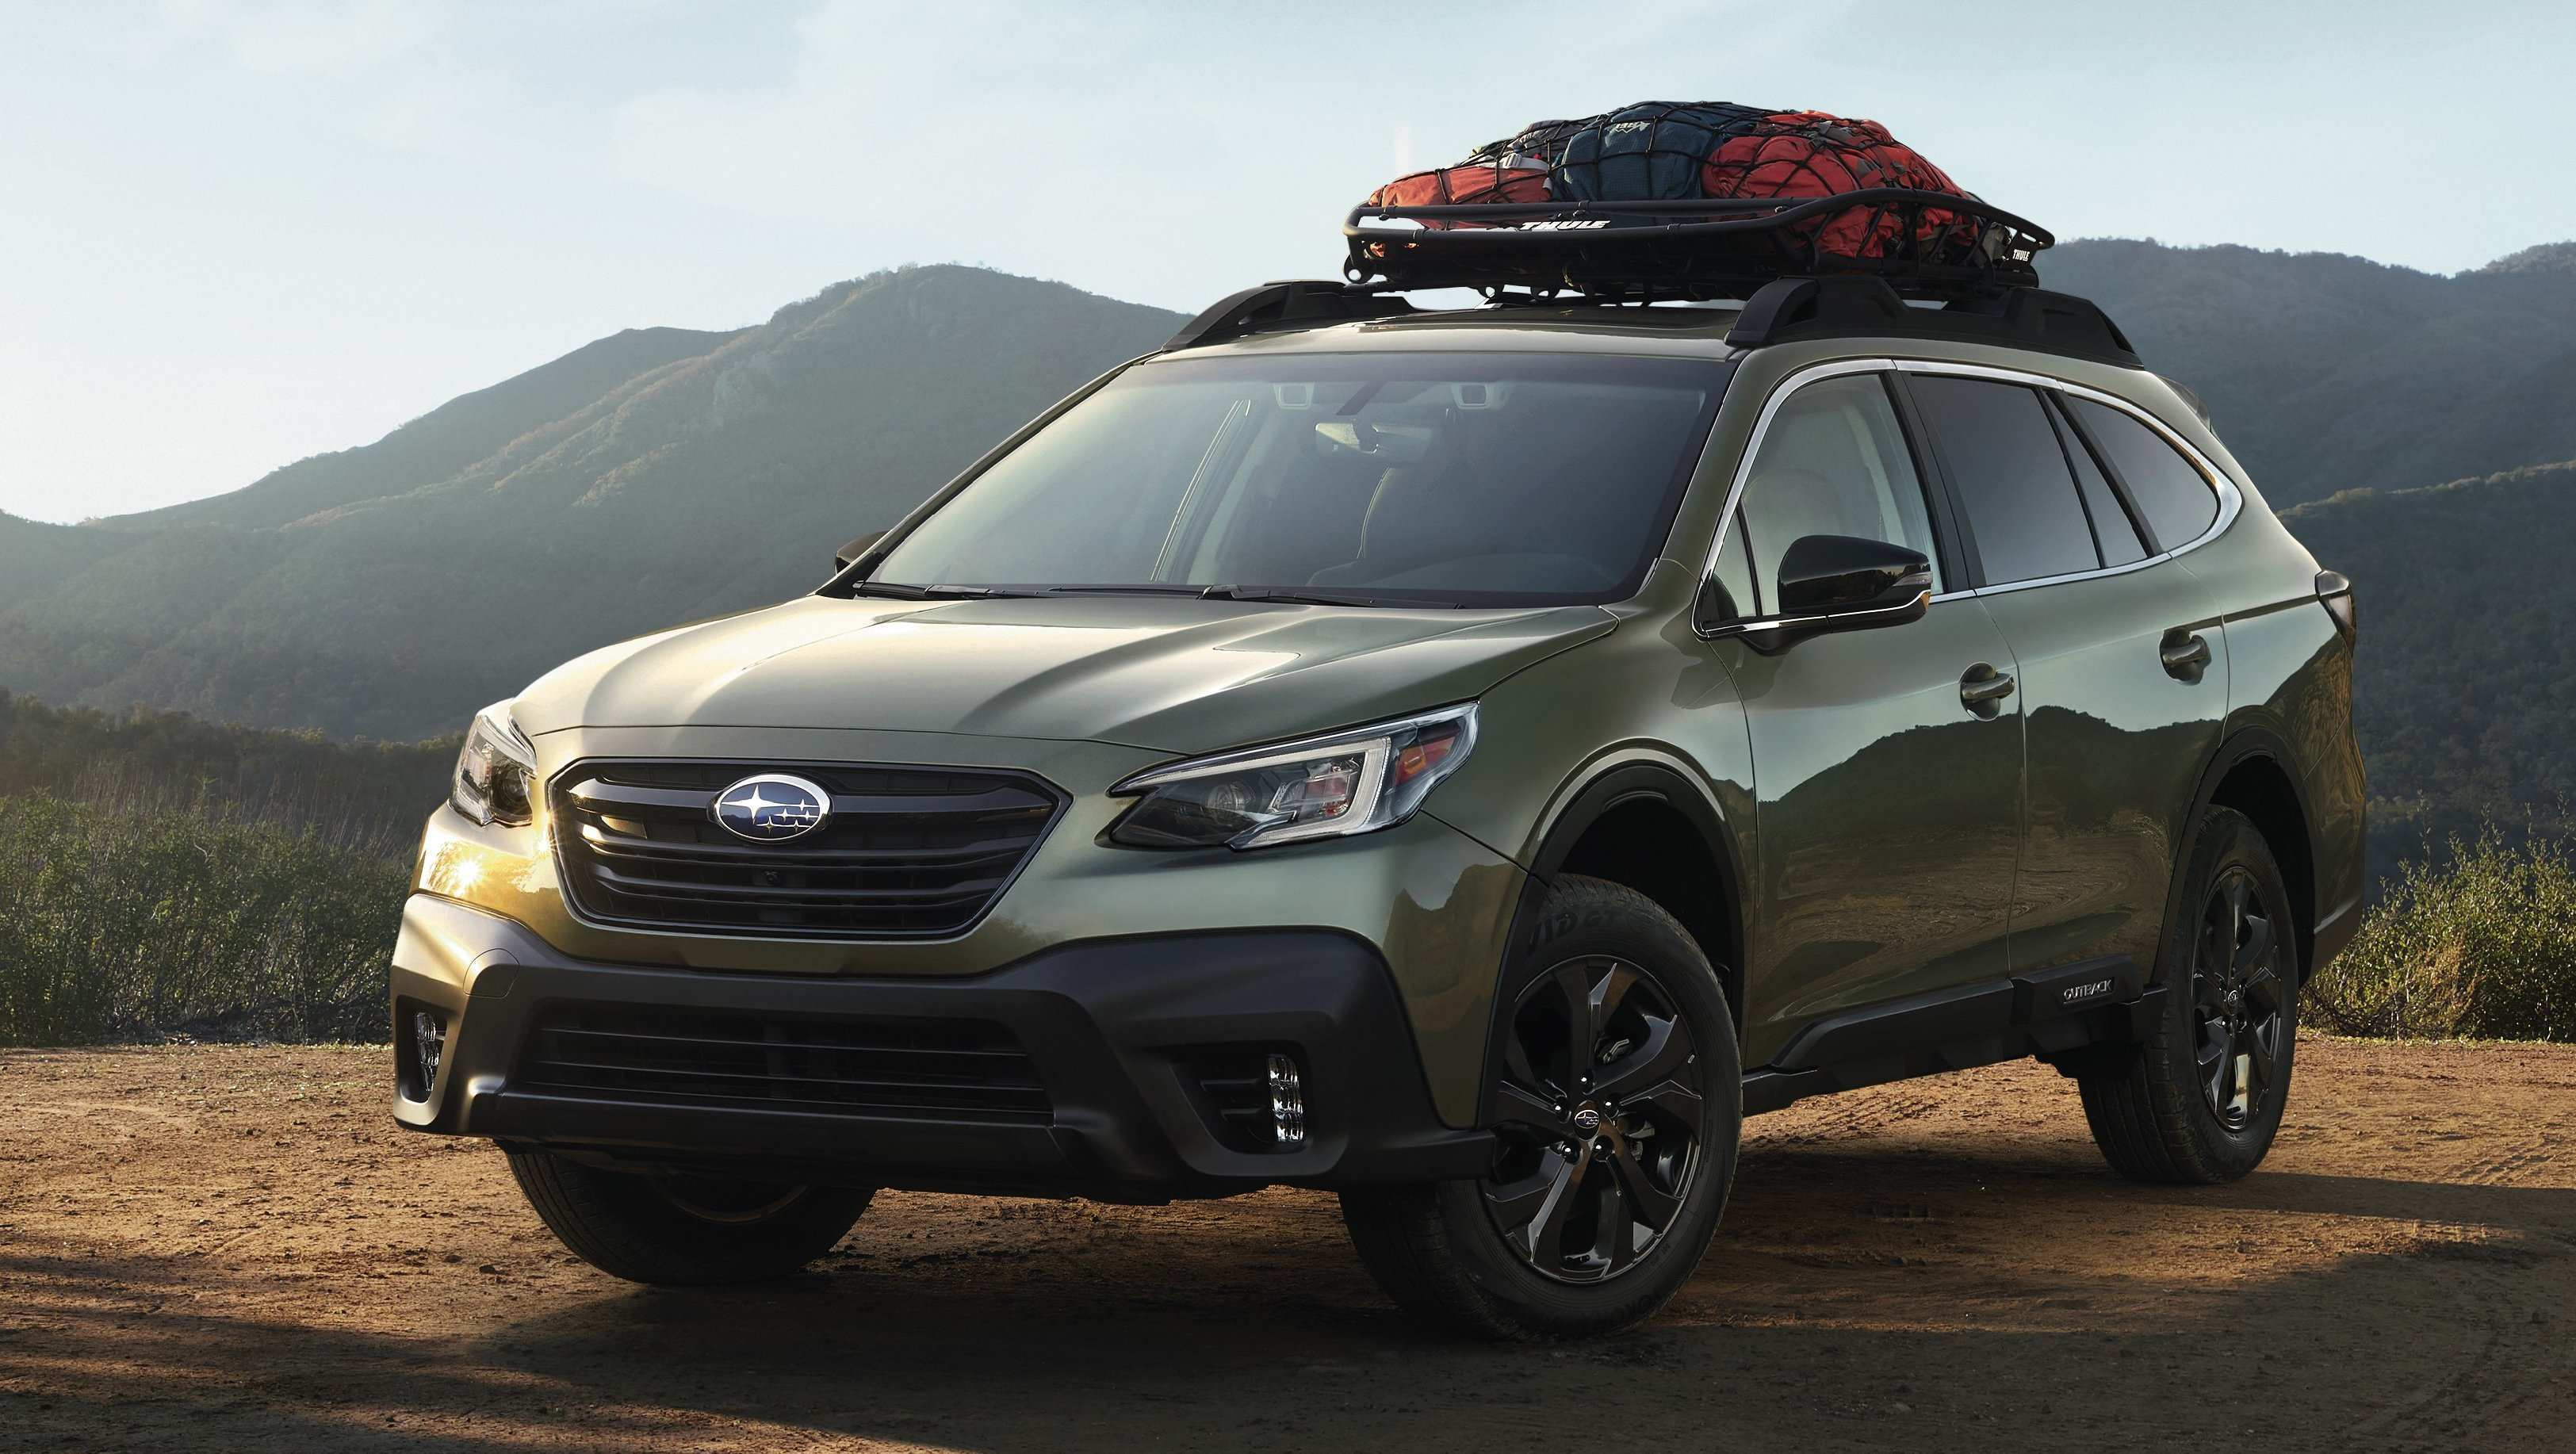 42 All New Subaru Outback 2020 Release Date Model